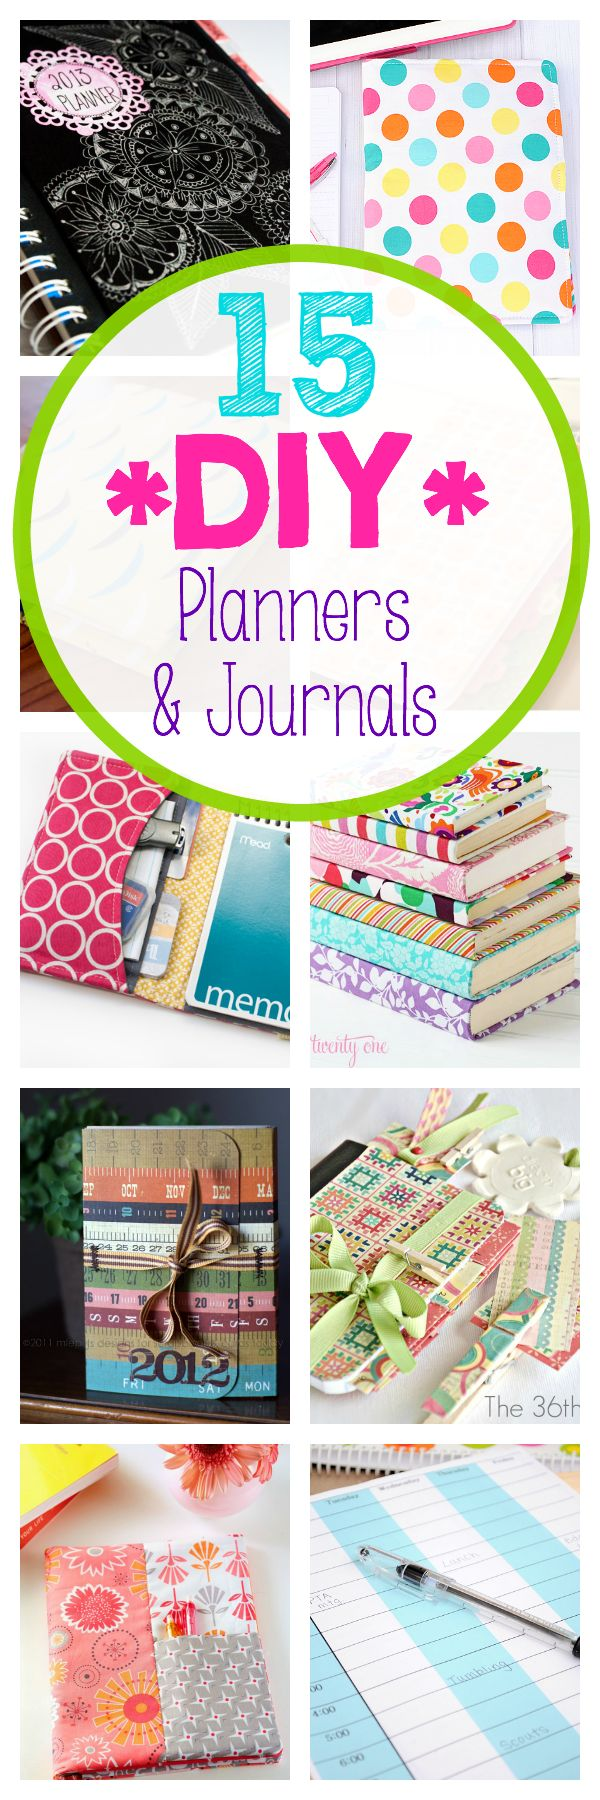 Ideas for a DIY planner or journal